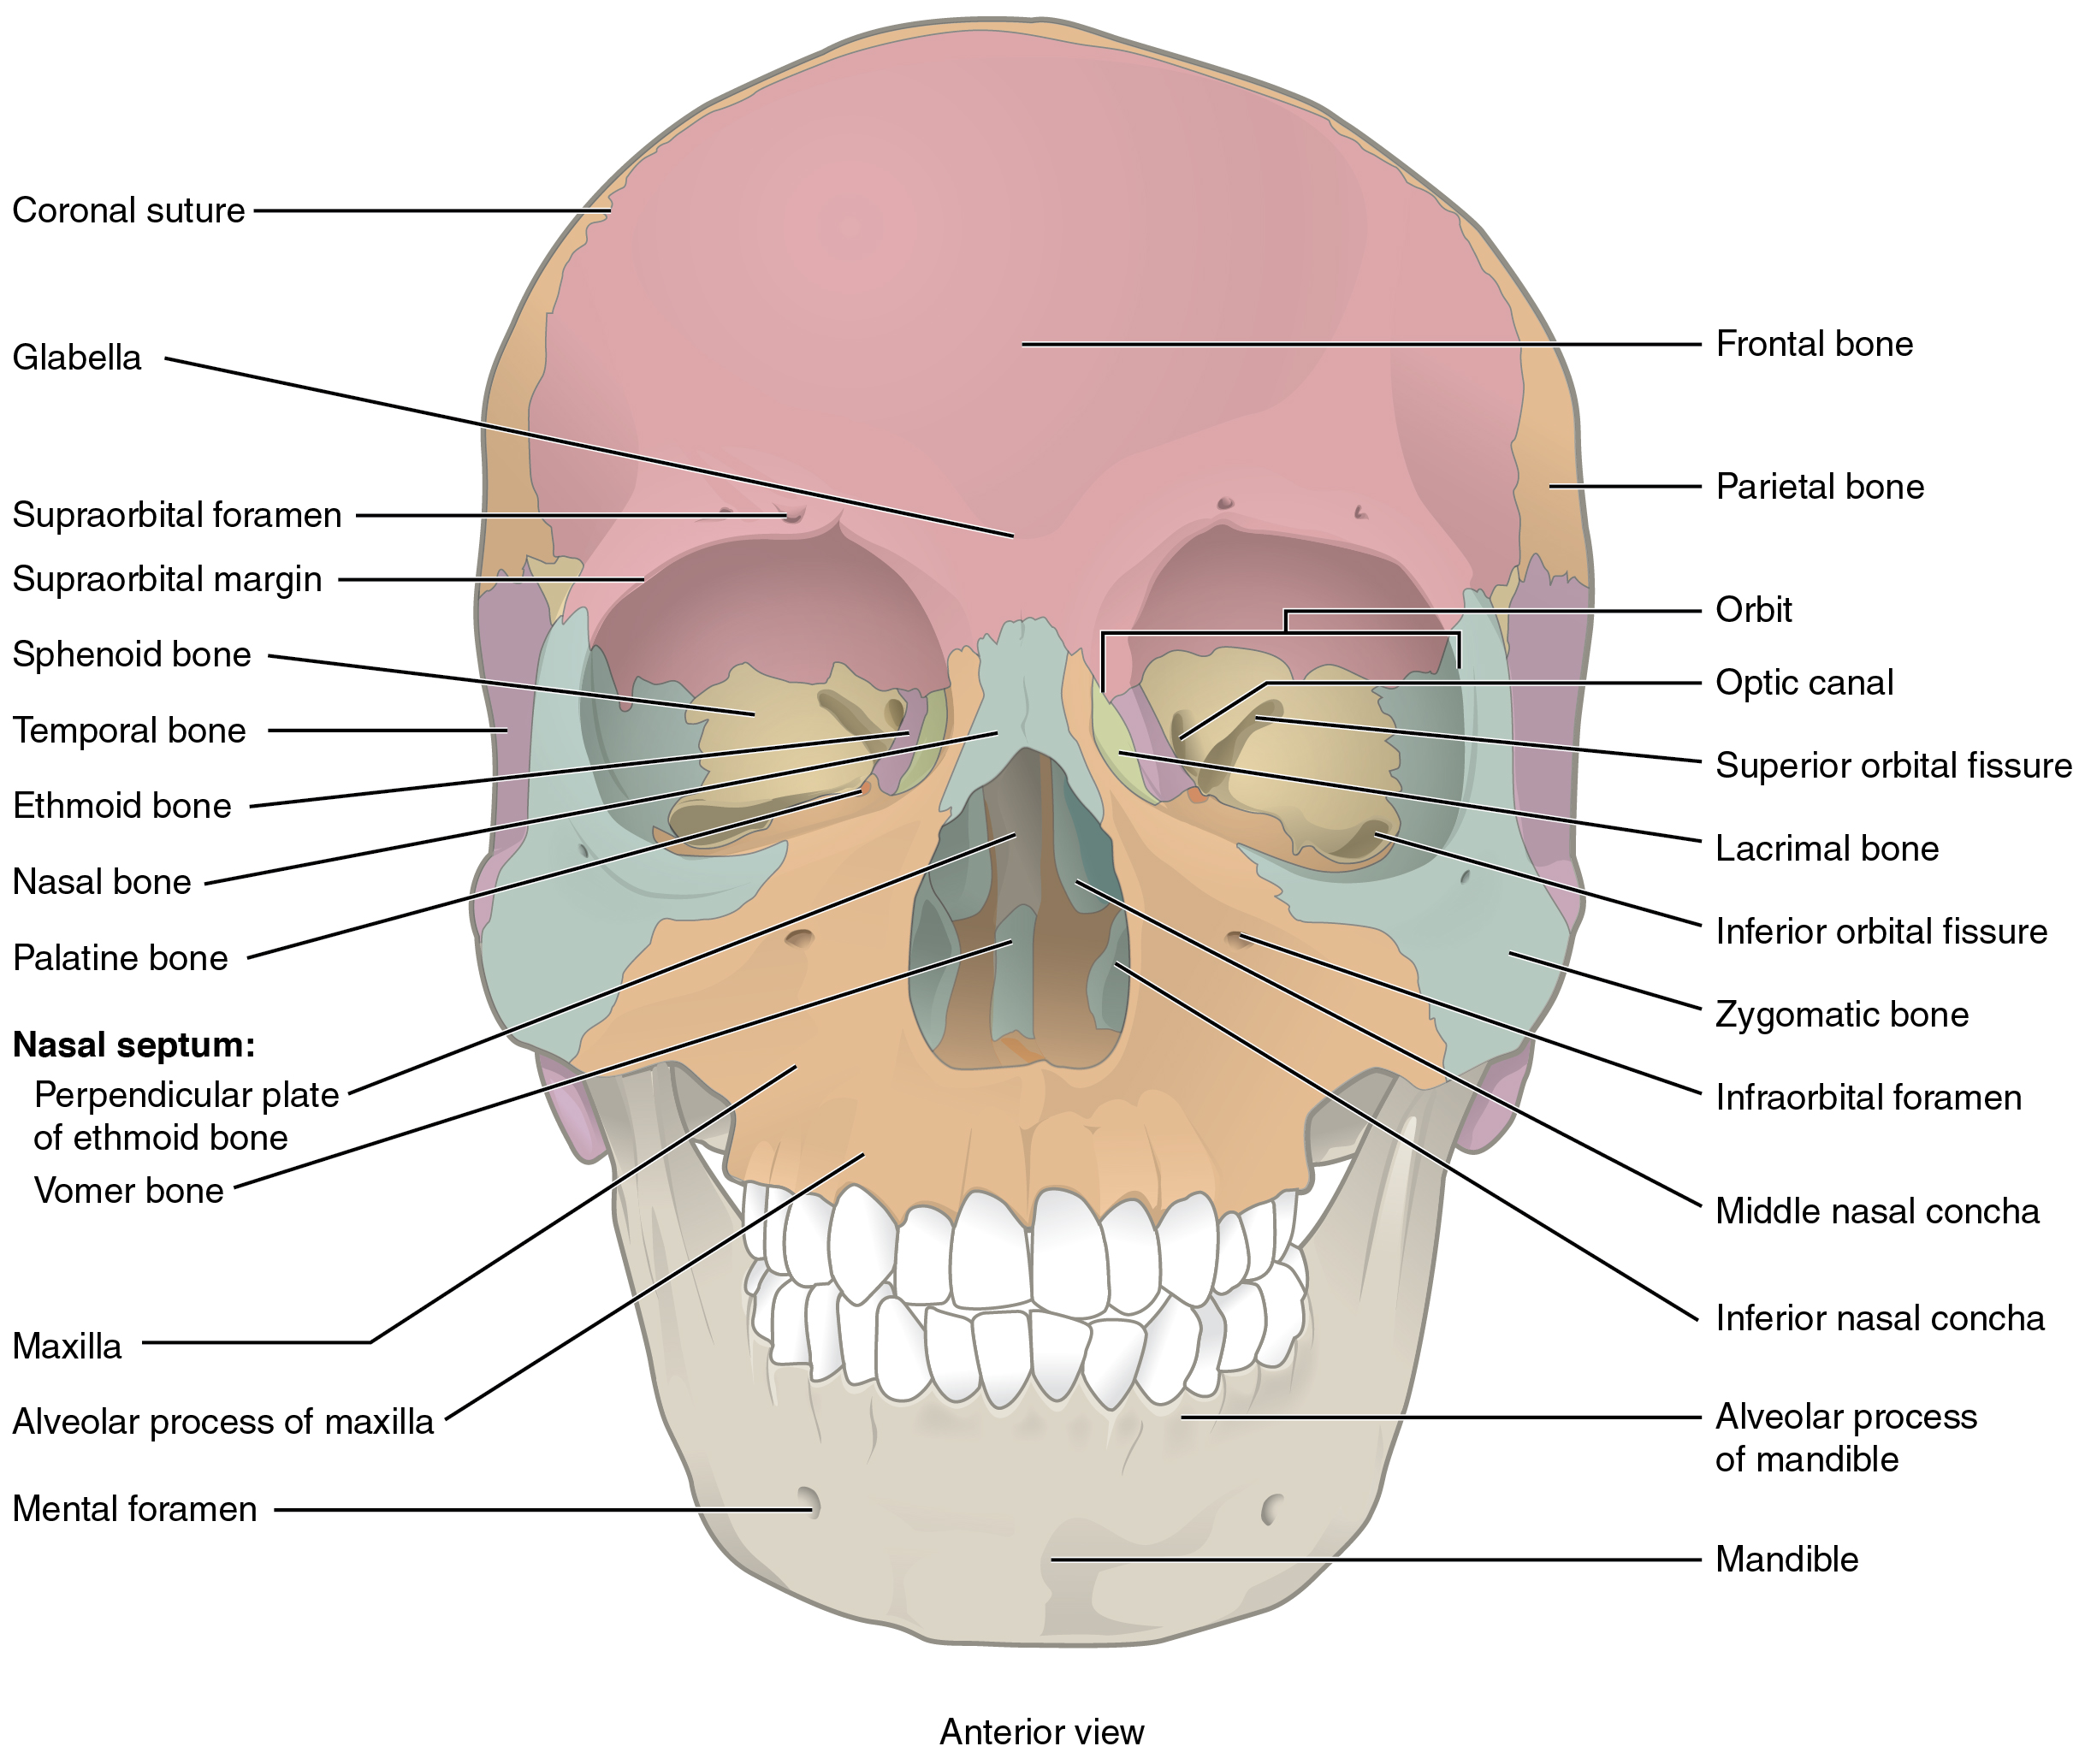 lateral view skull sutures diagram 2001 jeep wrangler engine the  anatomy and physiology